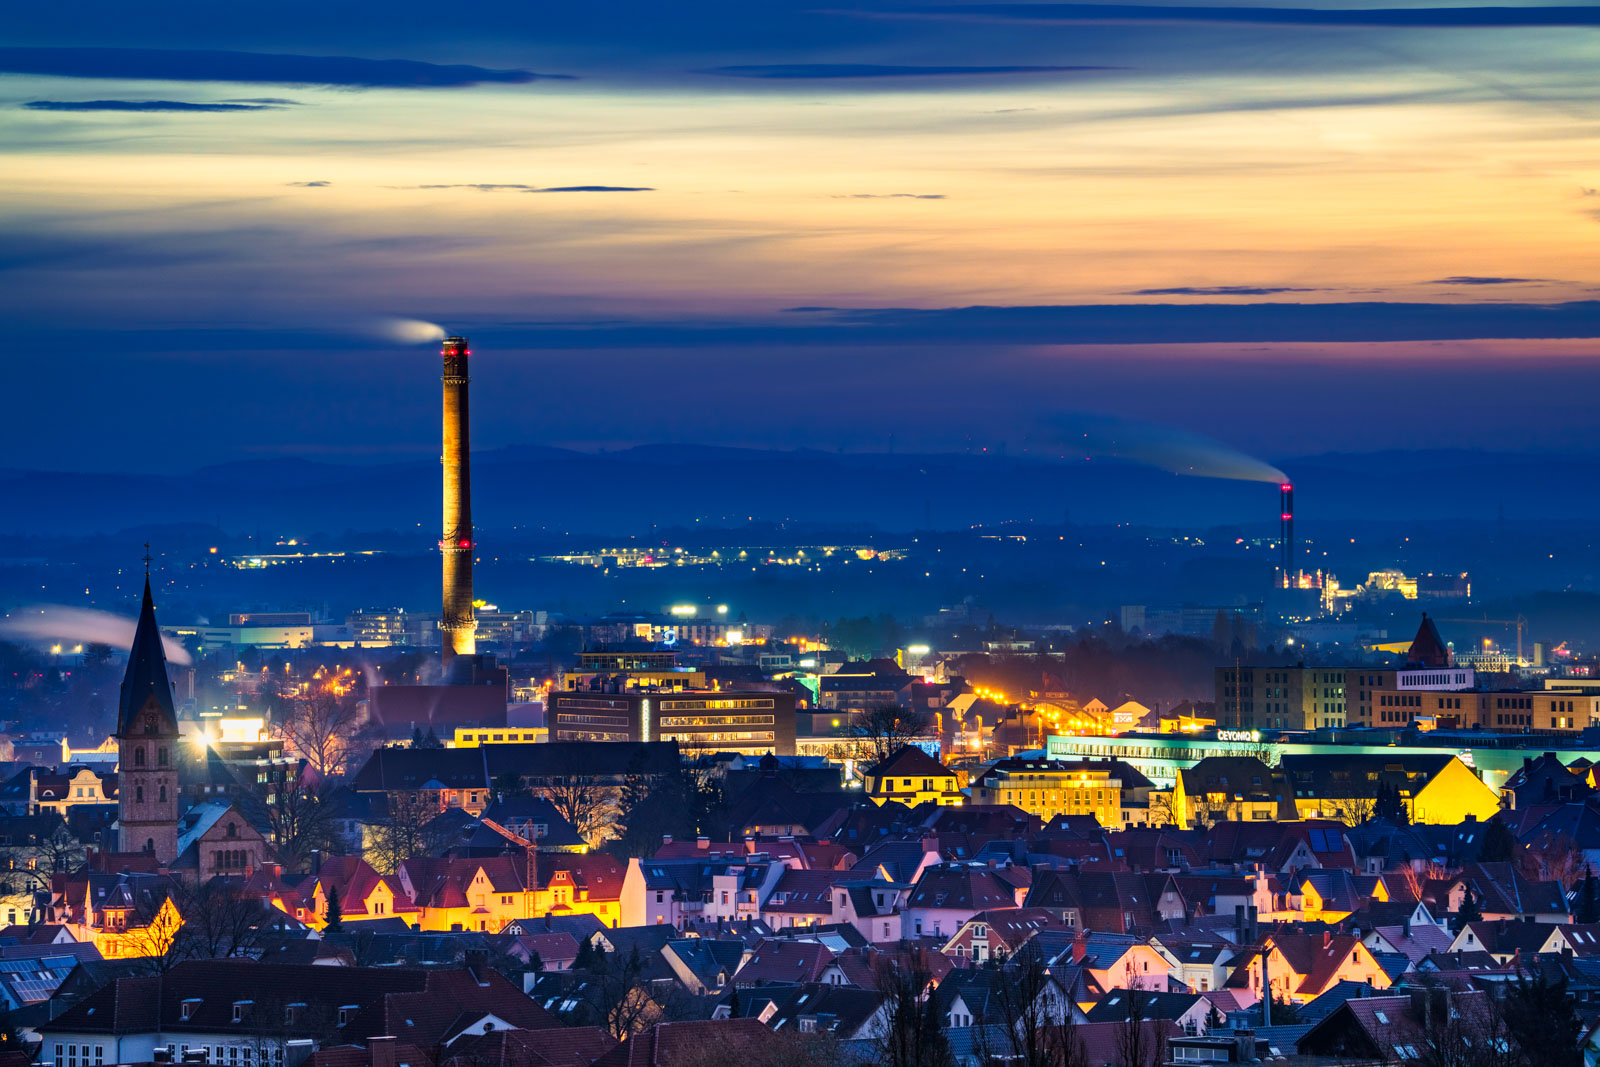 Dawn in winter over Bielefeld on 20 February 2021 (Germany).